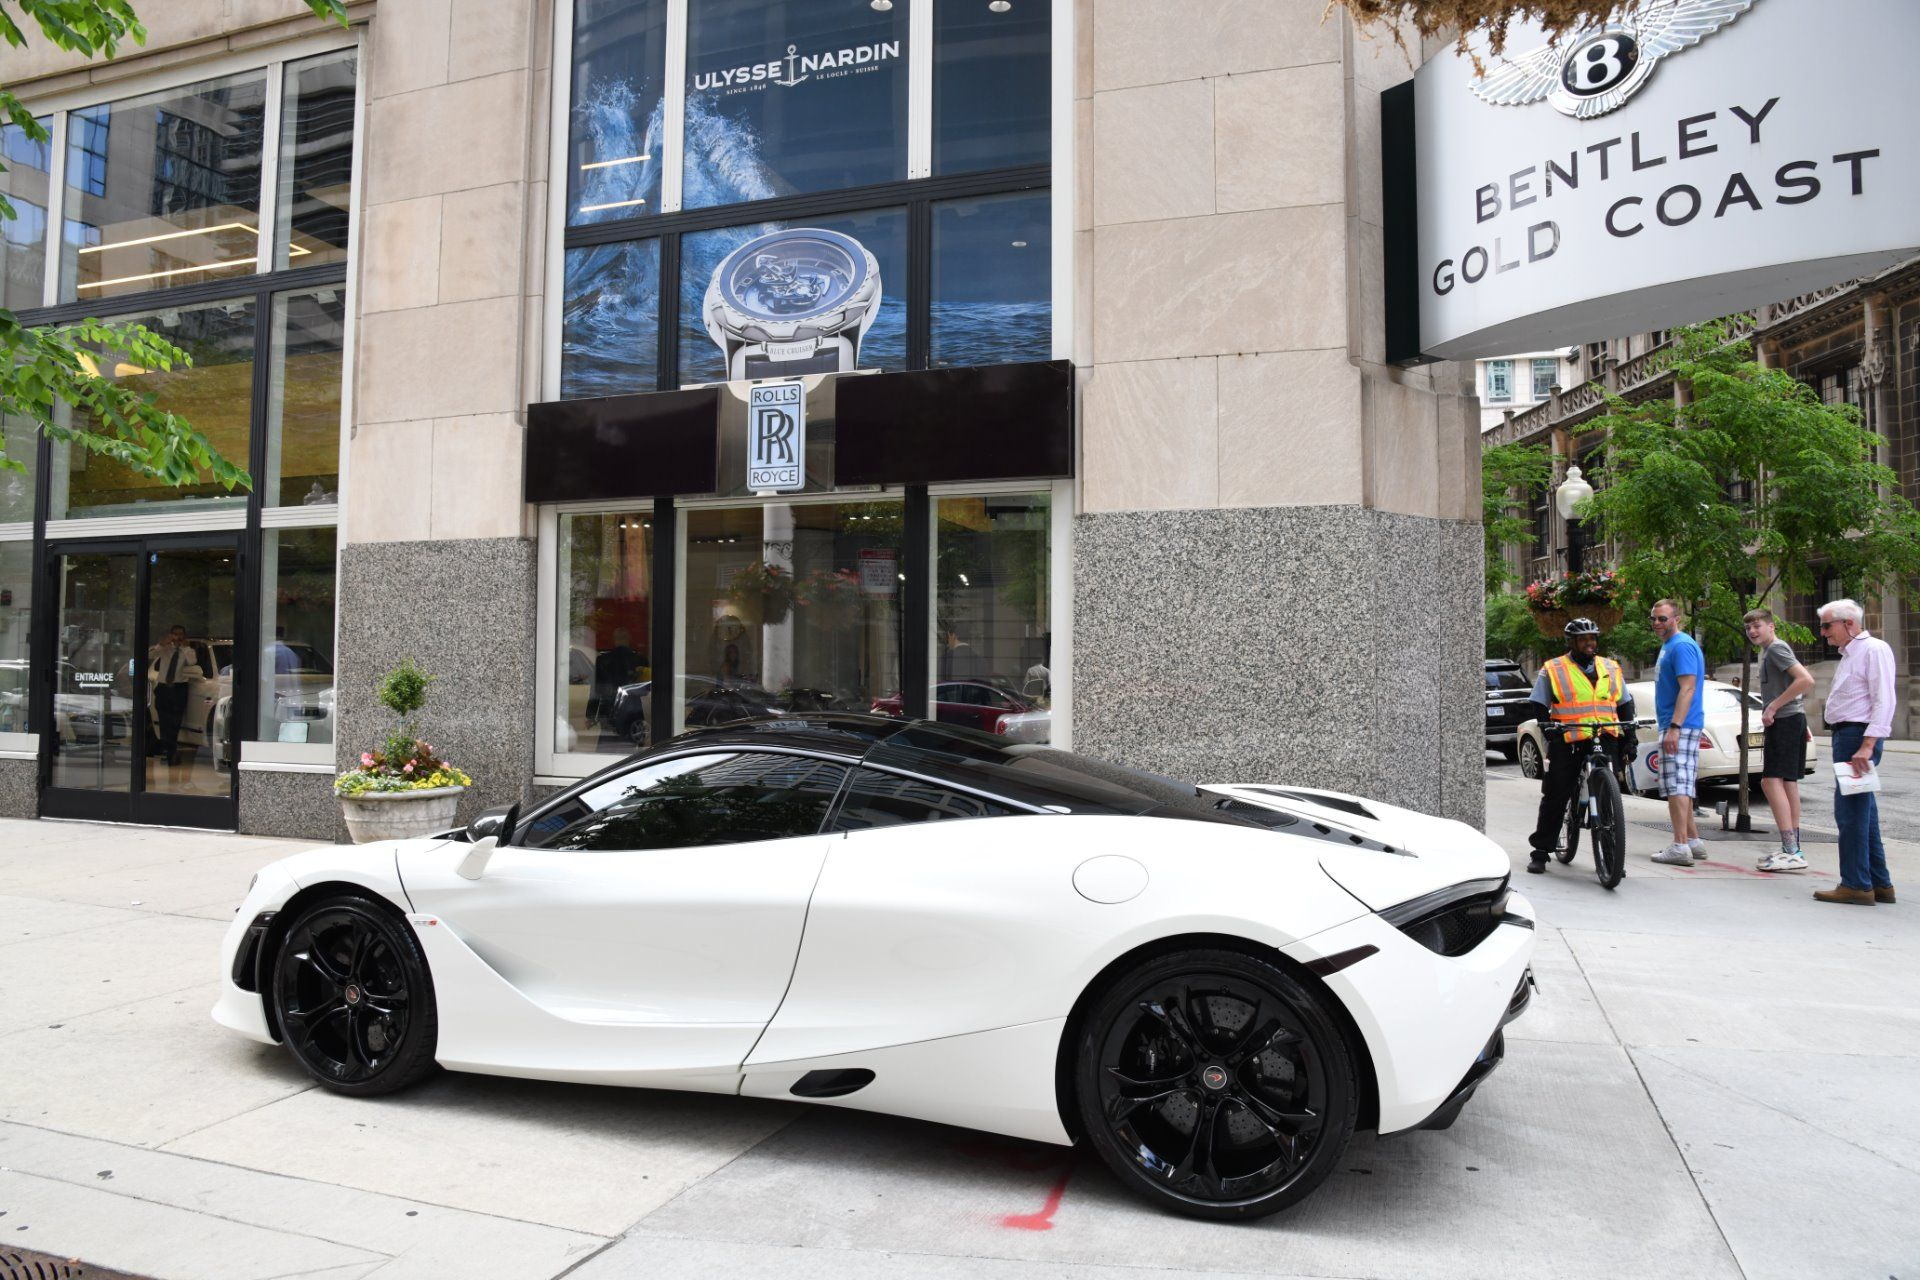 Used 2018 Mclaren 720s Chicago Il With Images Luxury Car Dealership Car Dealership Mclaren